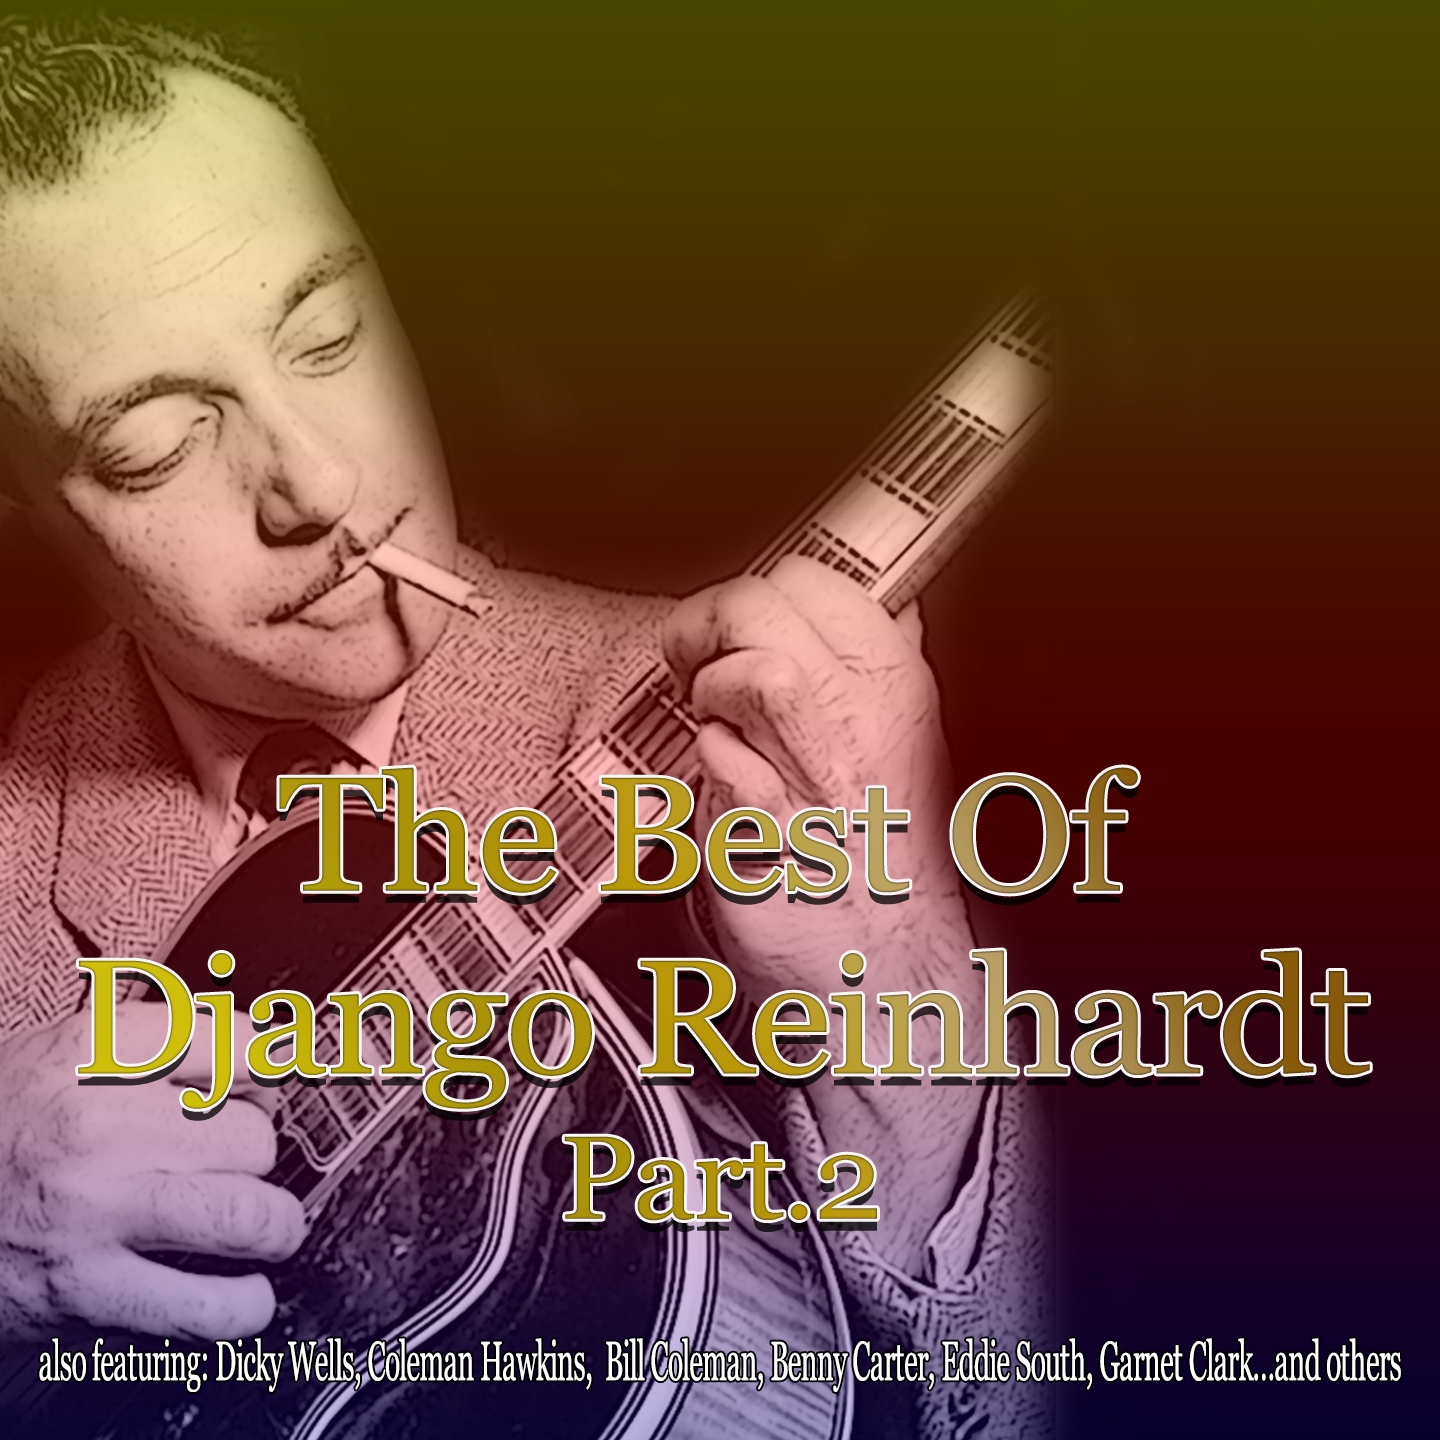 The Best of Django Reinhardt, Part 2